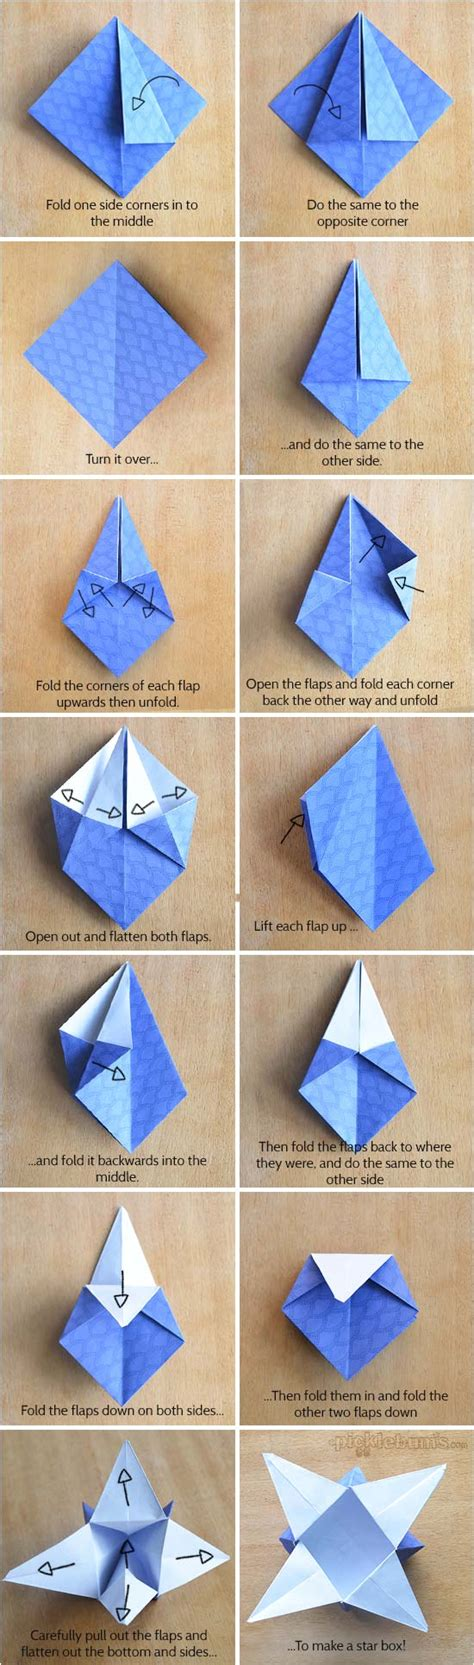 What Of Paper Do You Use For Origami - origami boxes with printable origami paper origami